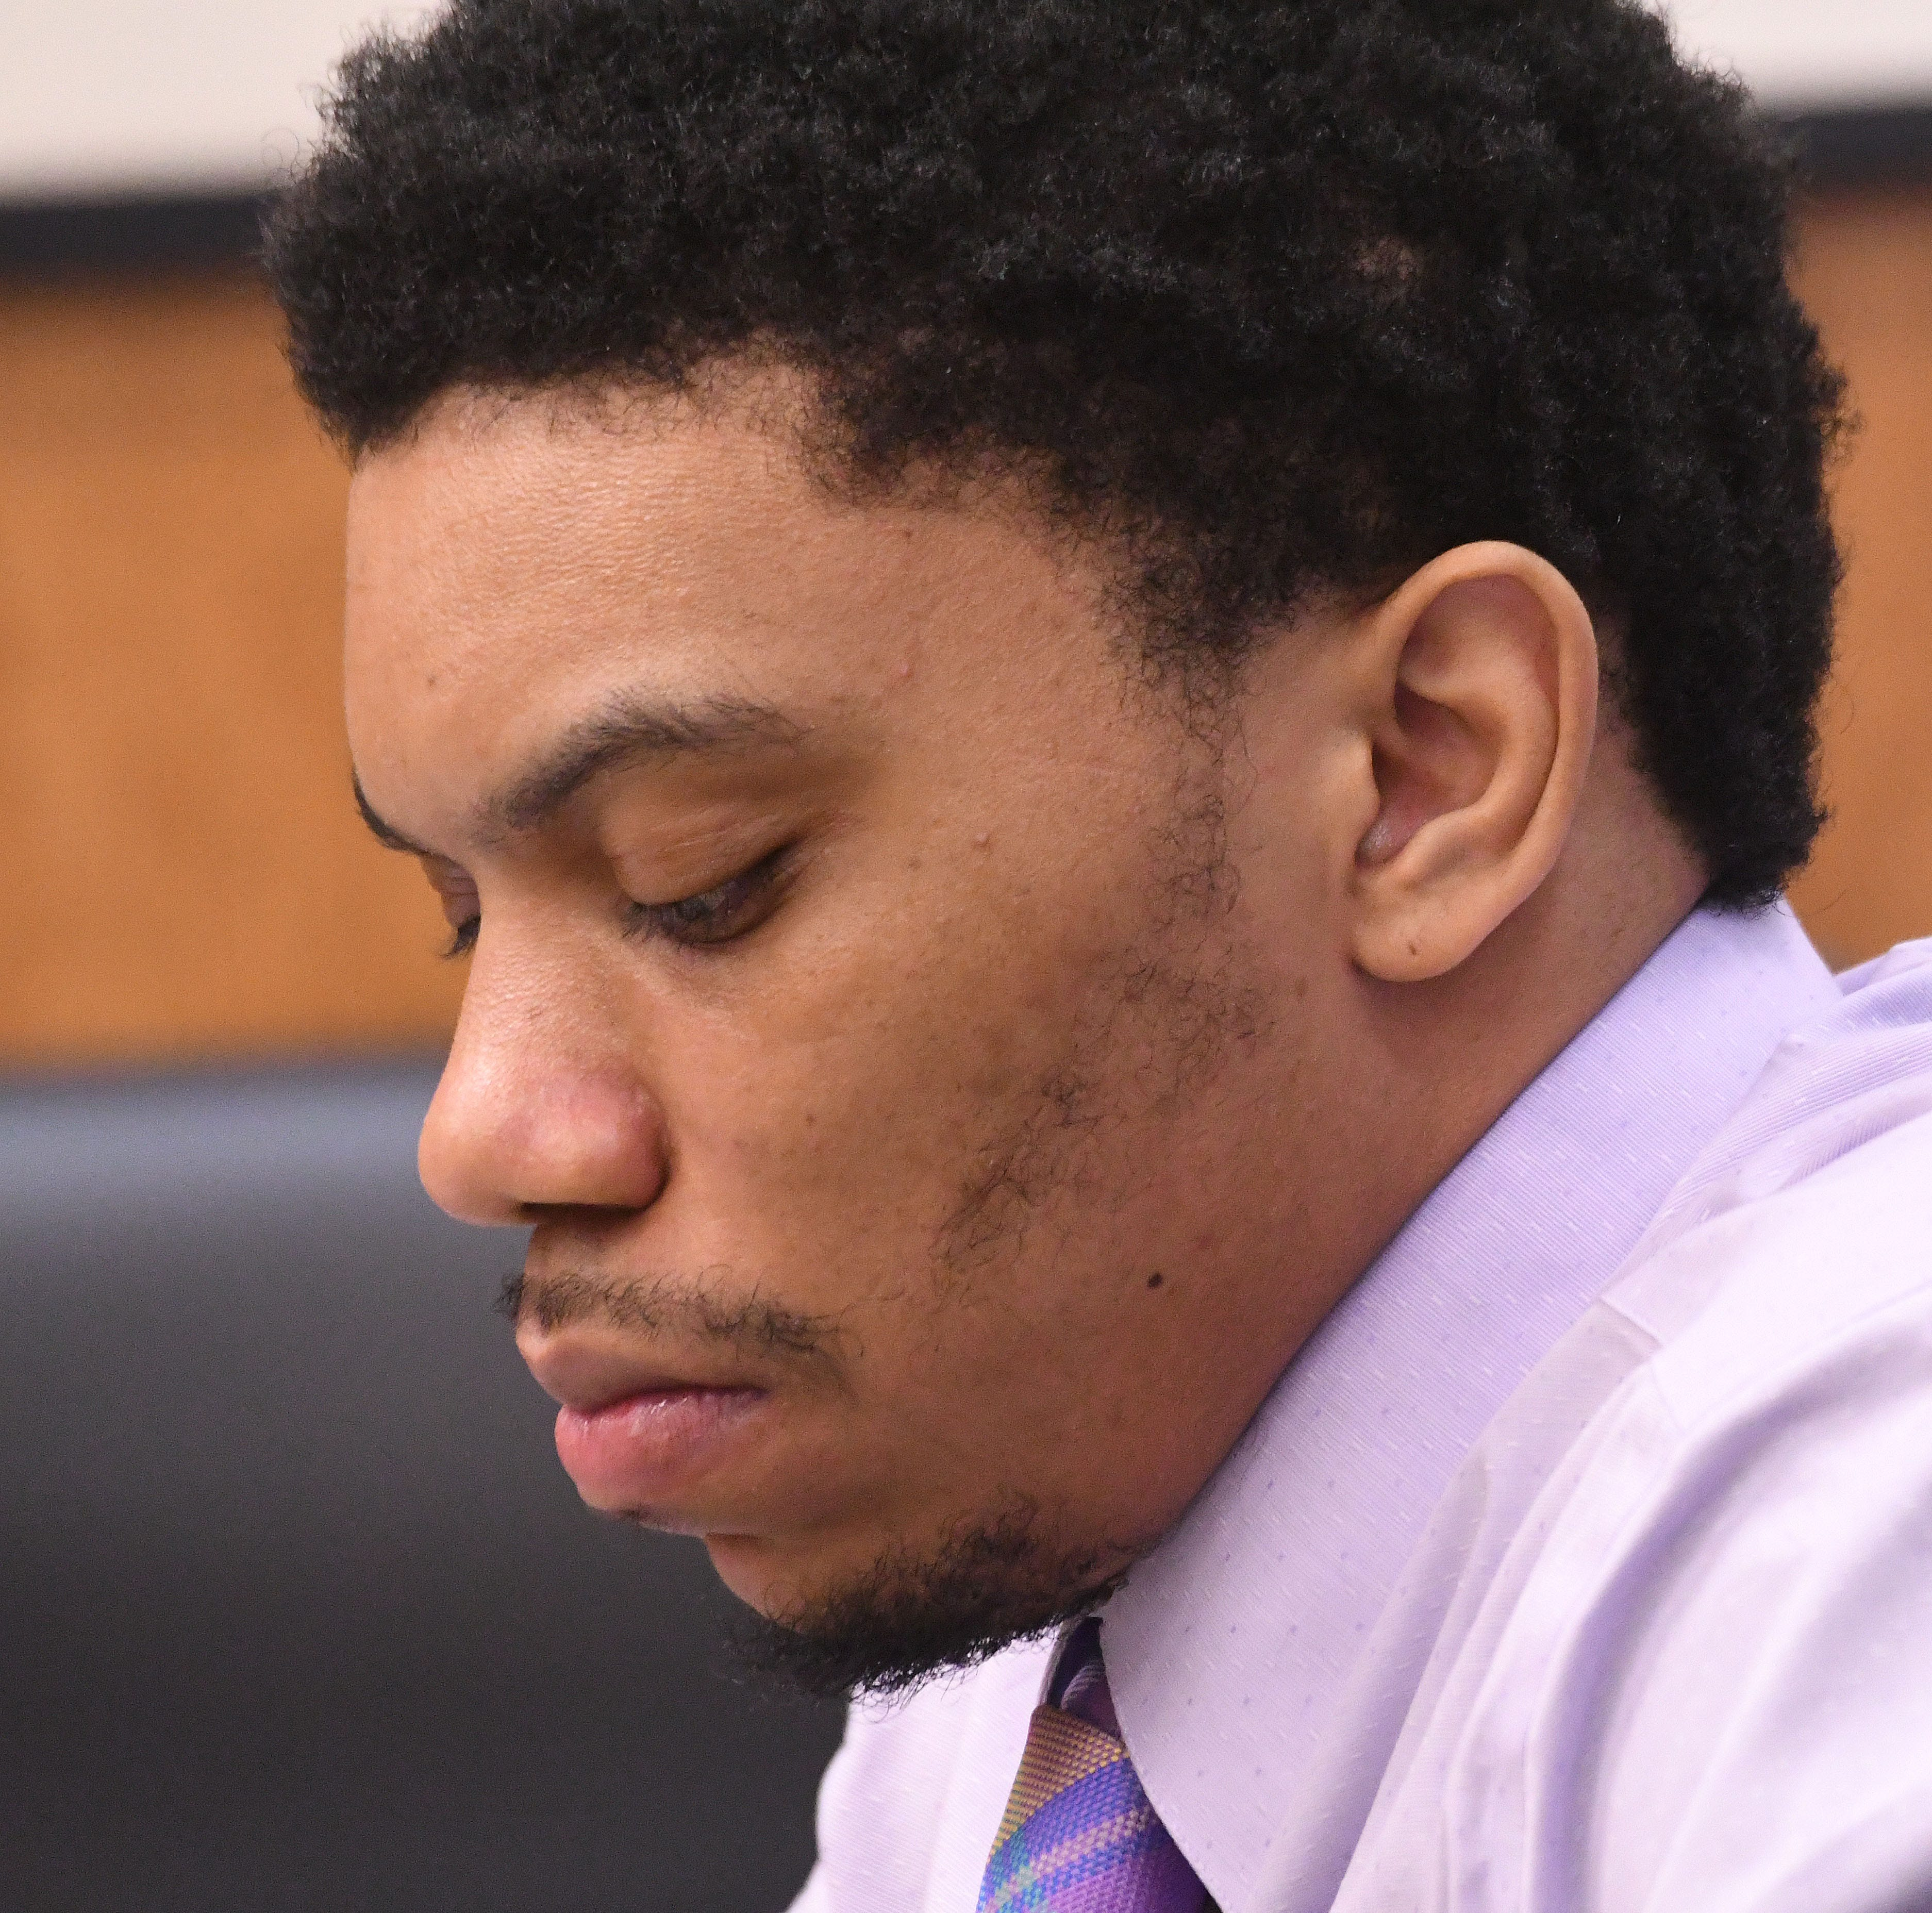 Deshawn Dowdell found guilty of murder